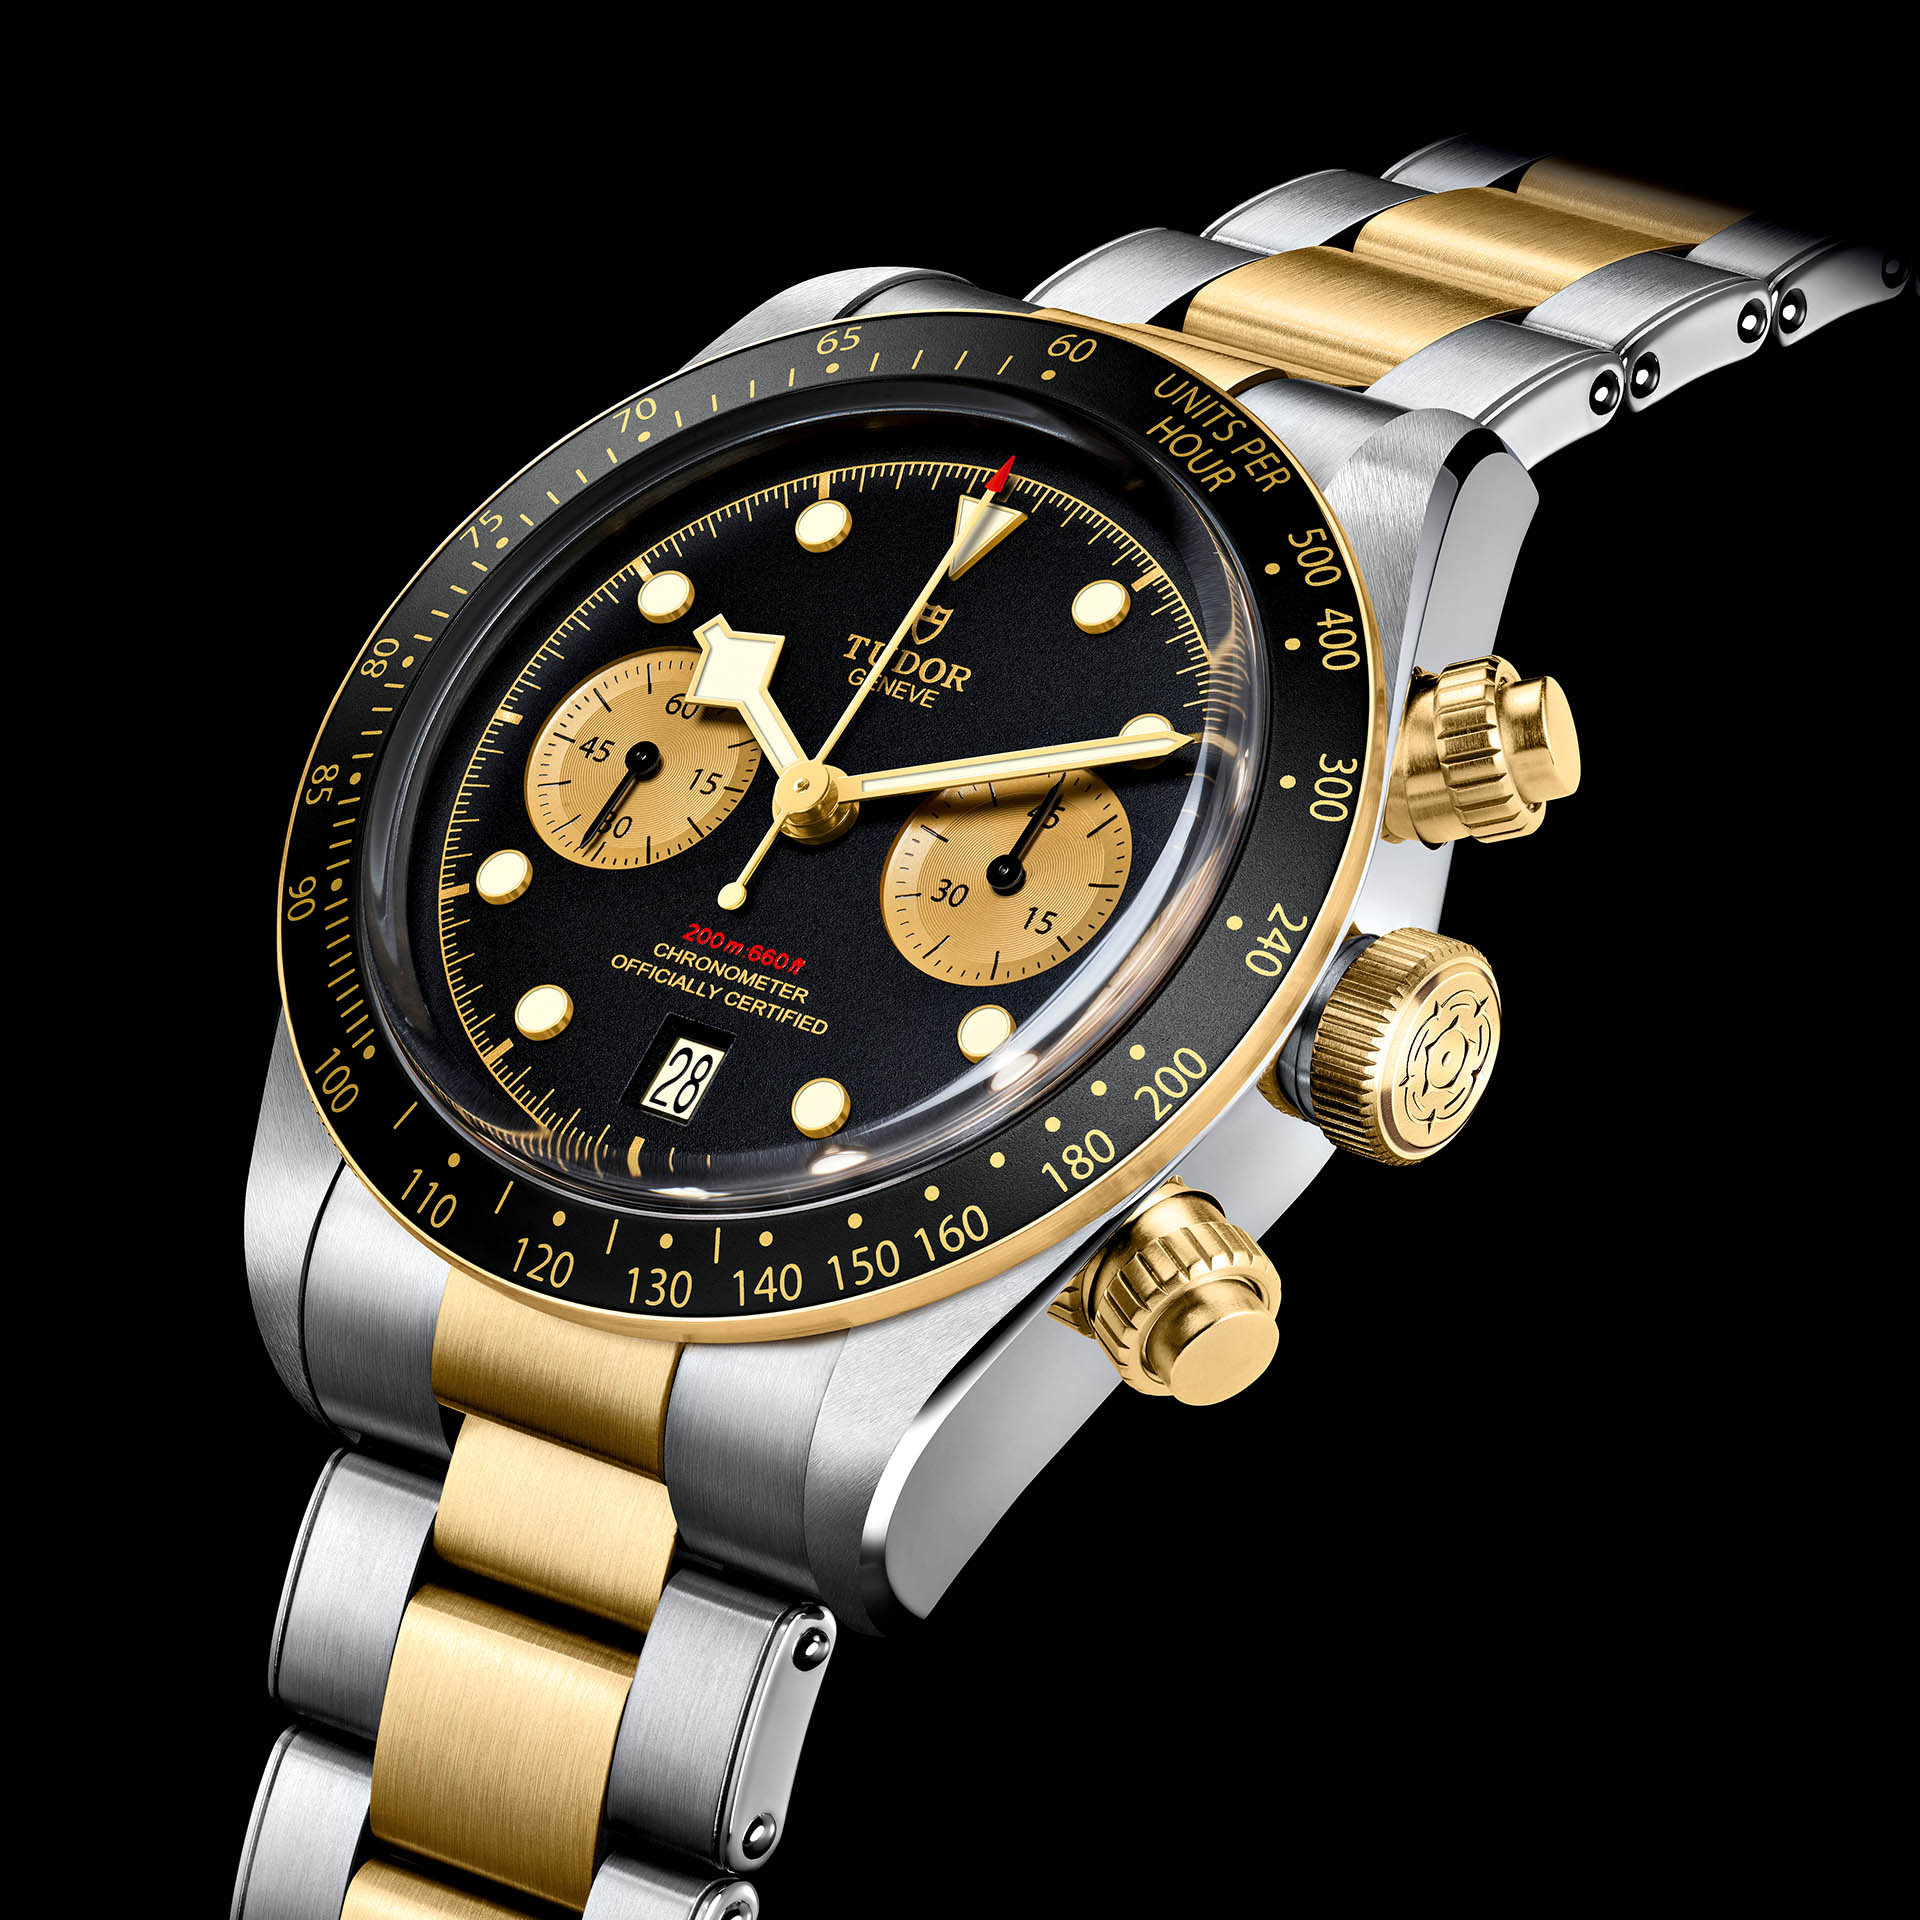 Tudor Black Bay Chrono